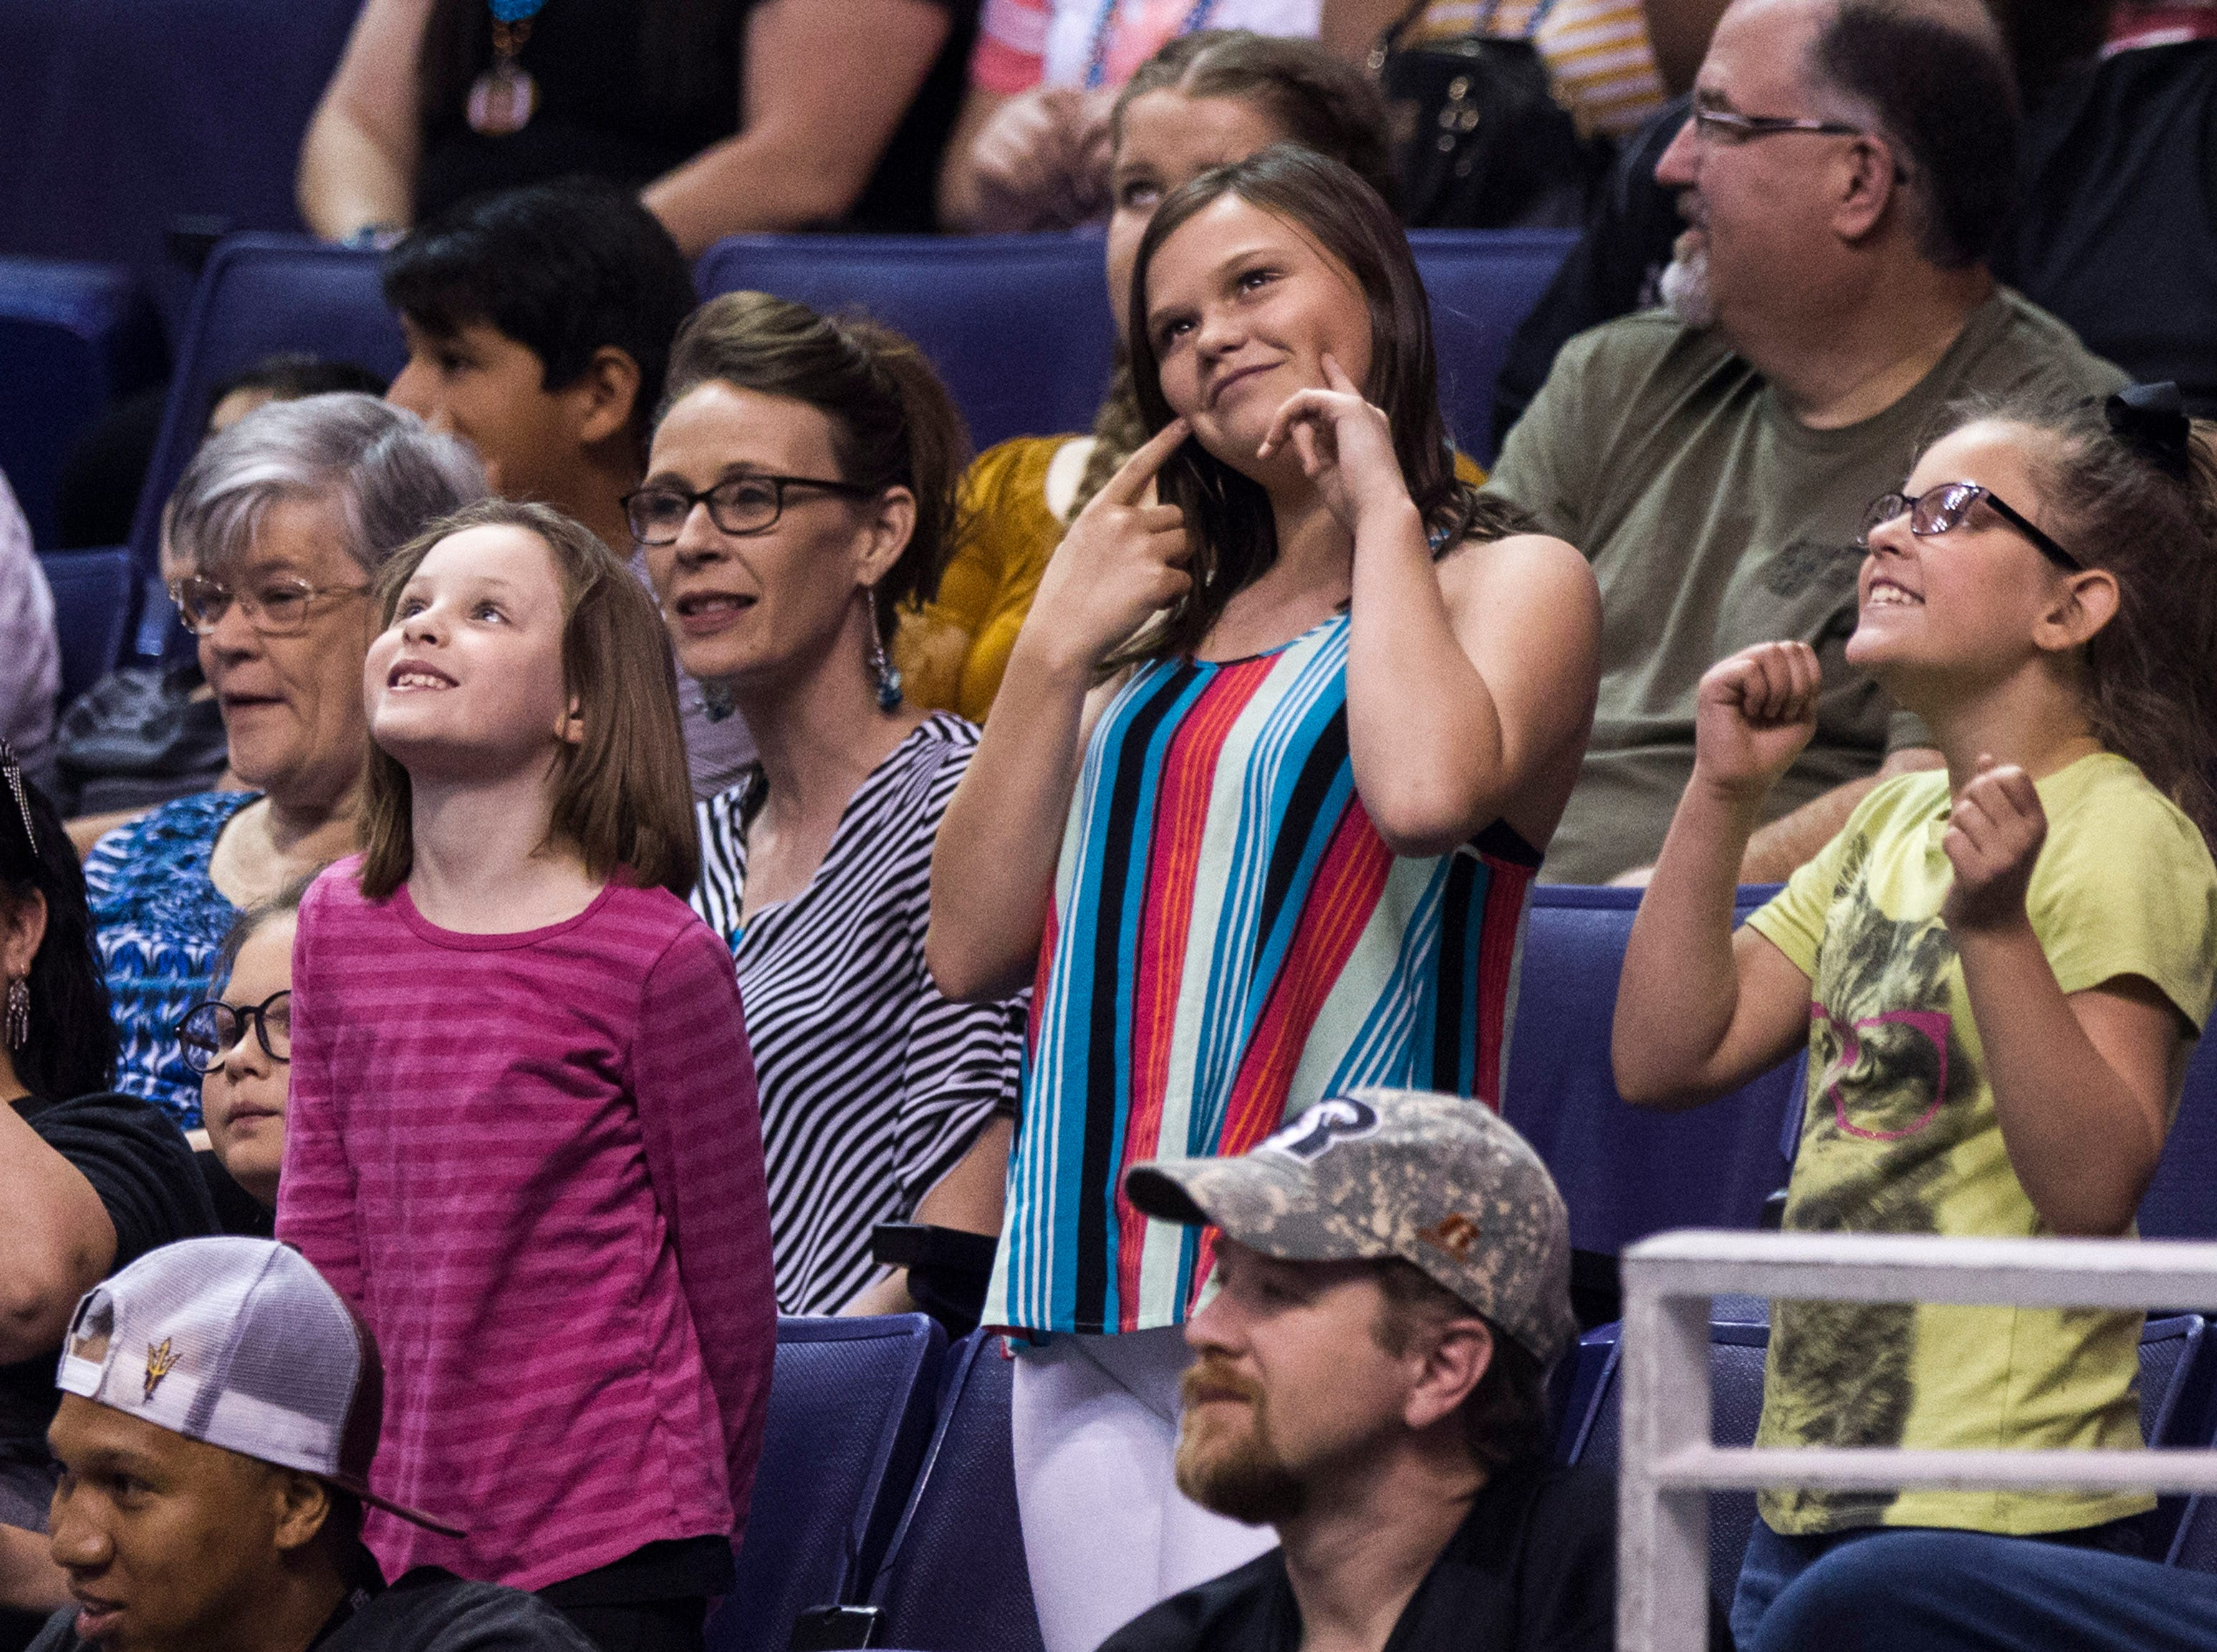 Arizona Rattlers fans ham it up during their game with the San Diego Strike Force at Talking Stick Resort Arena in Phoenix Friday, April. 6, 2019.